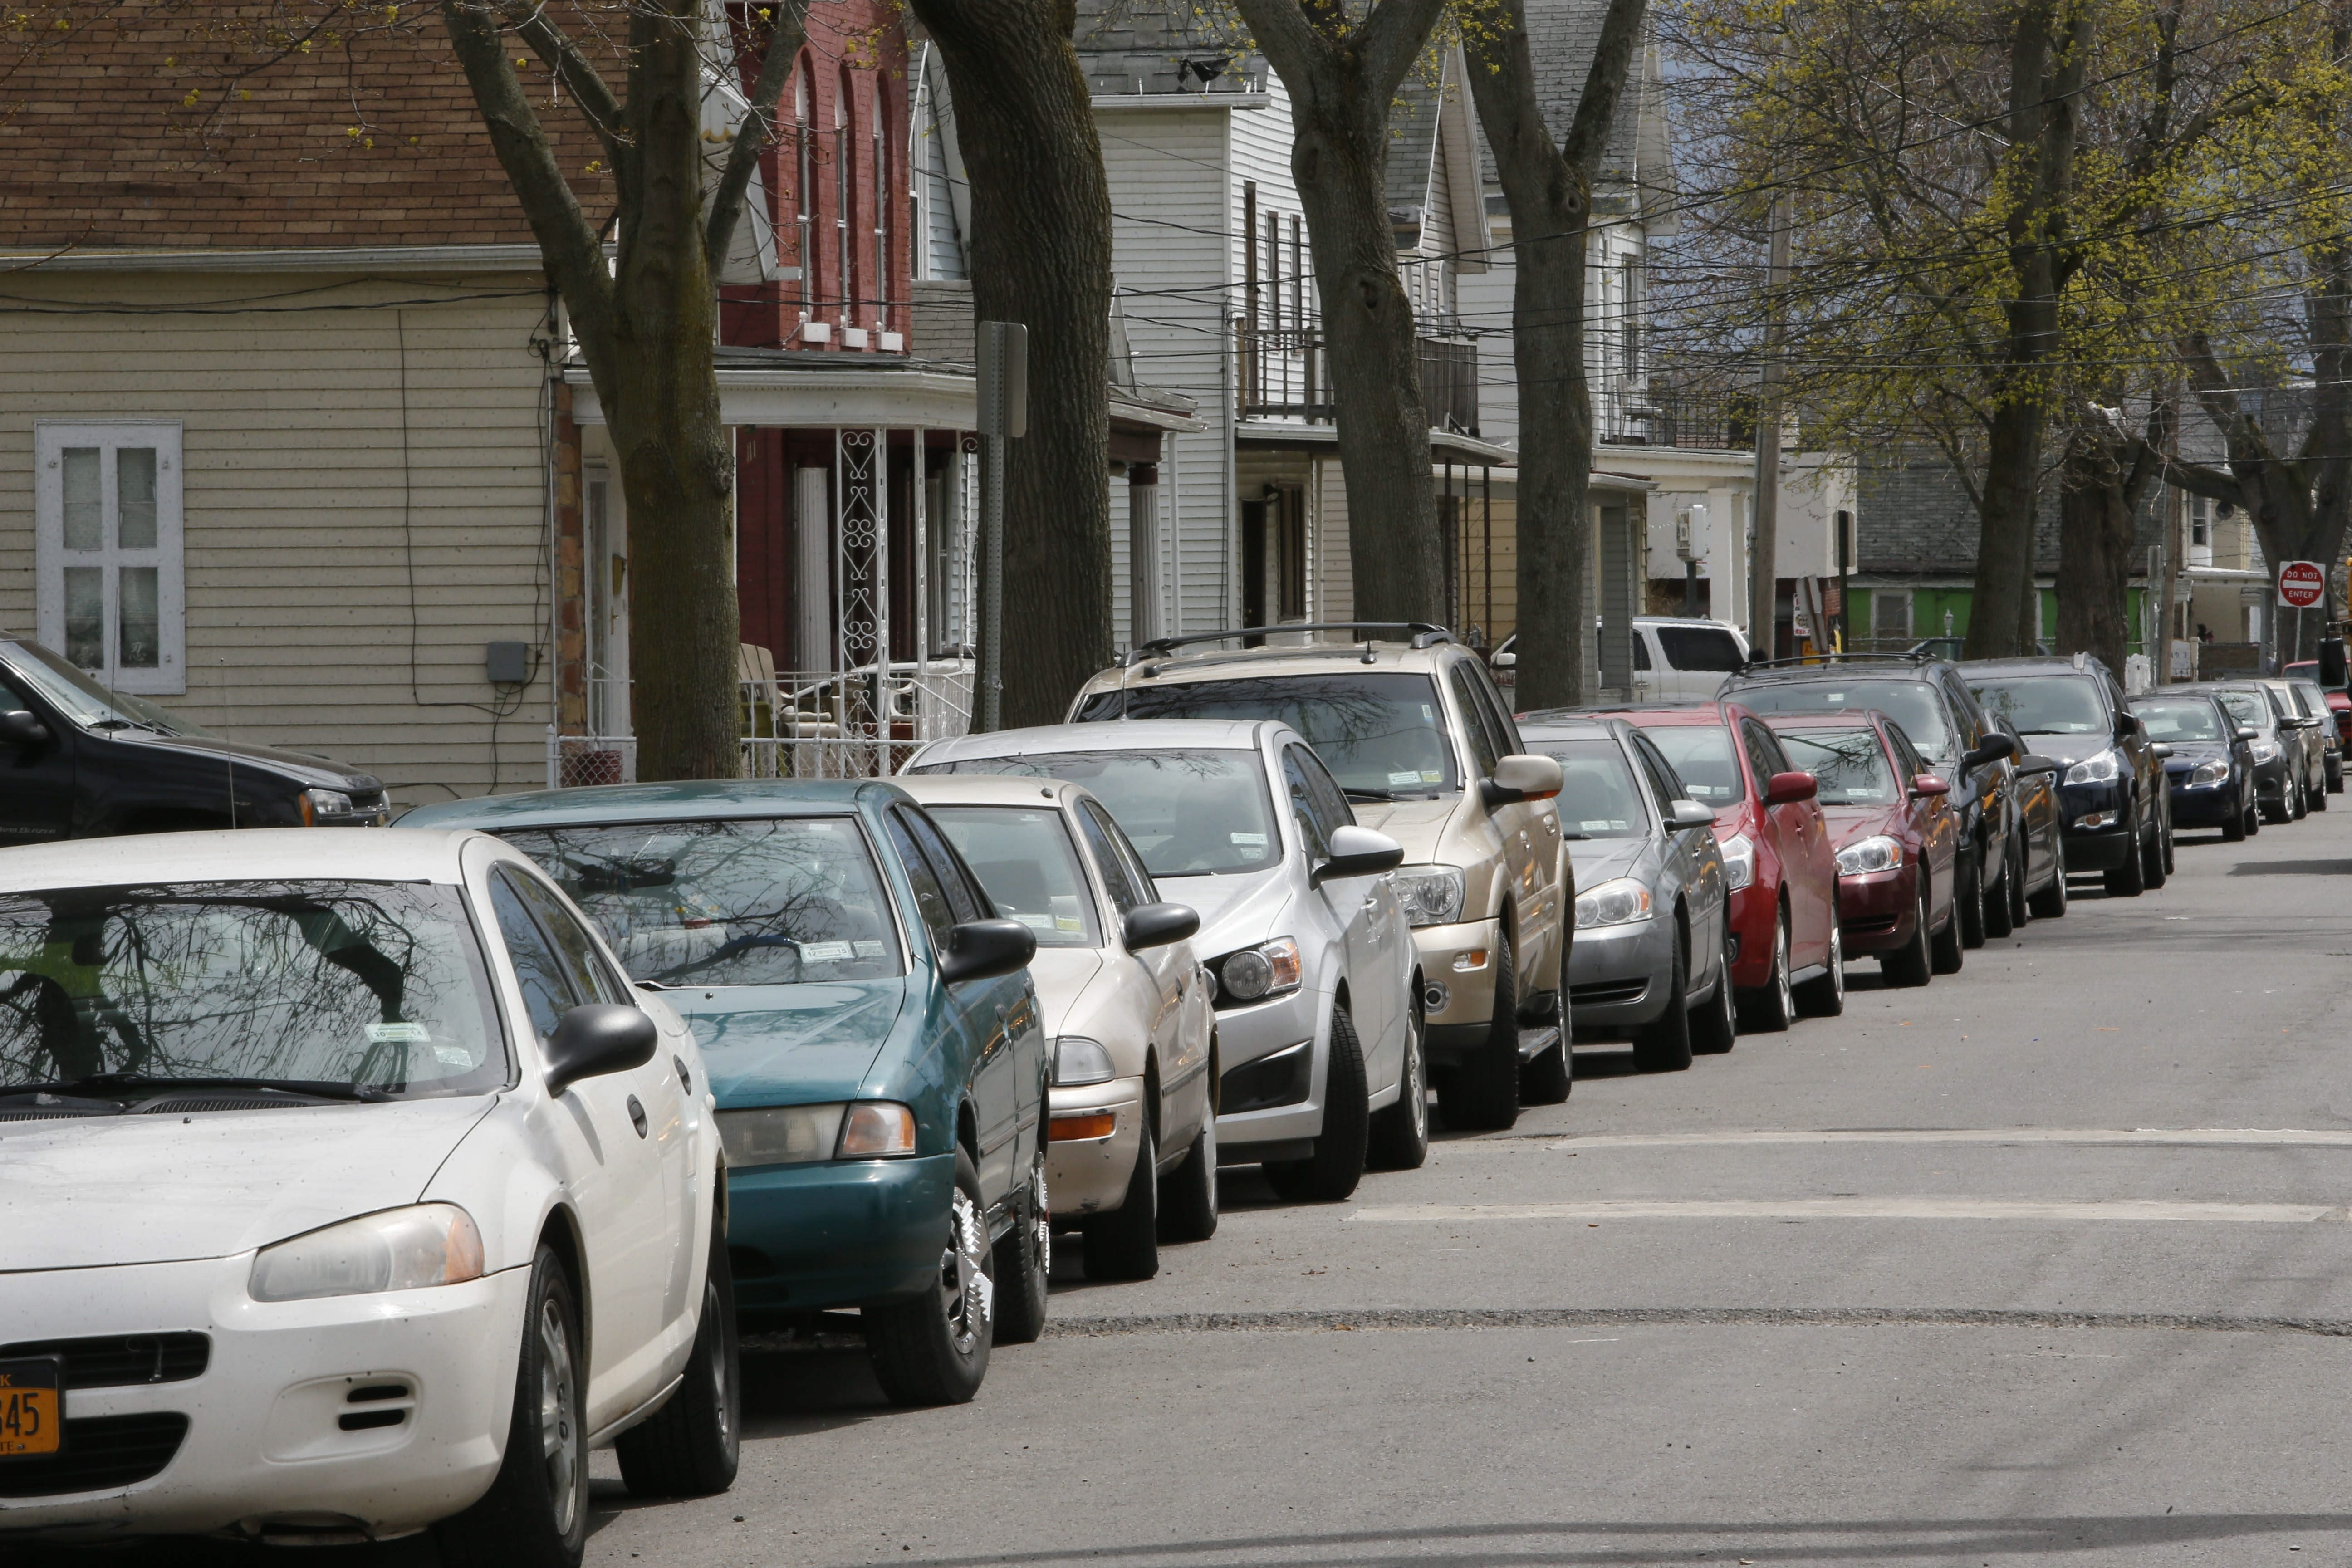 Cars are parked bumper to bumper on Maple Street in the Fruit Belt as the street has become a popular parking spot workers at the Buffalo Niagara Medical Campus.  (Derek Gee/Buffalo News)